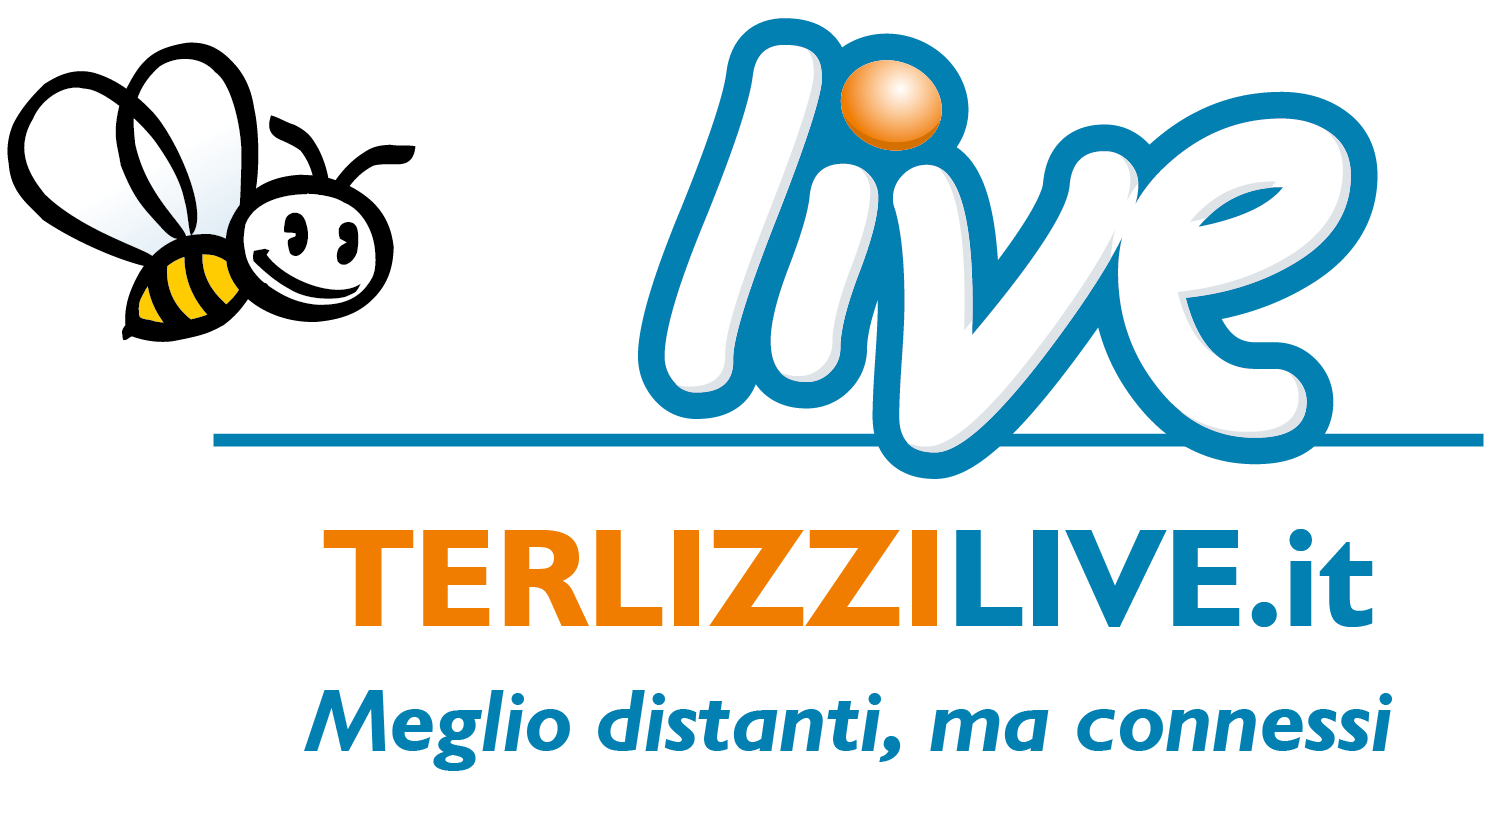 TerlizziLive.it